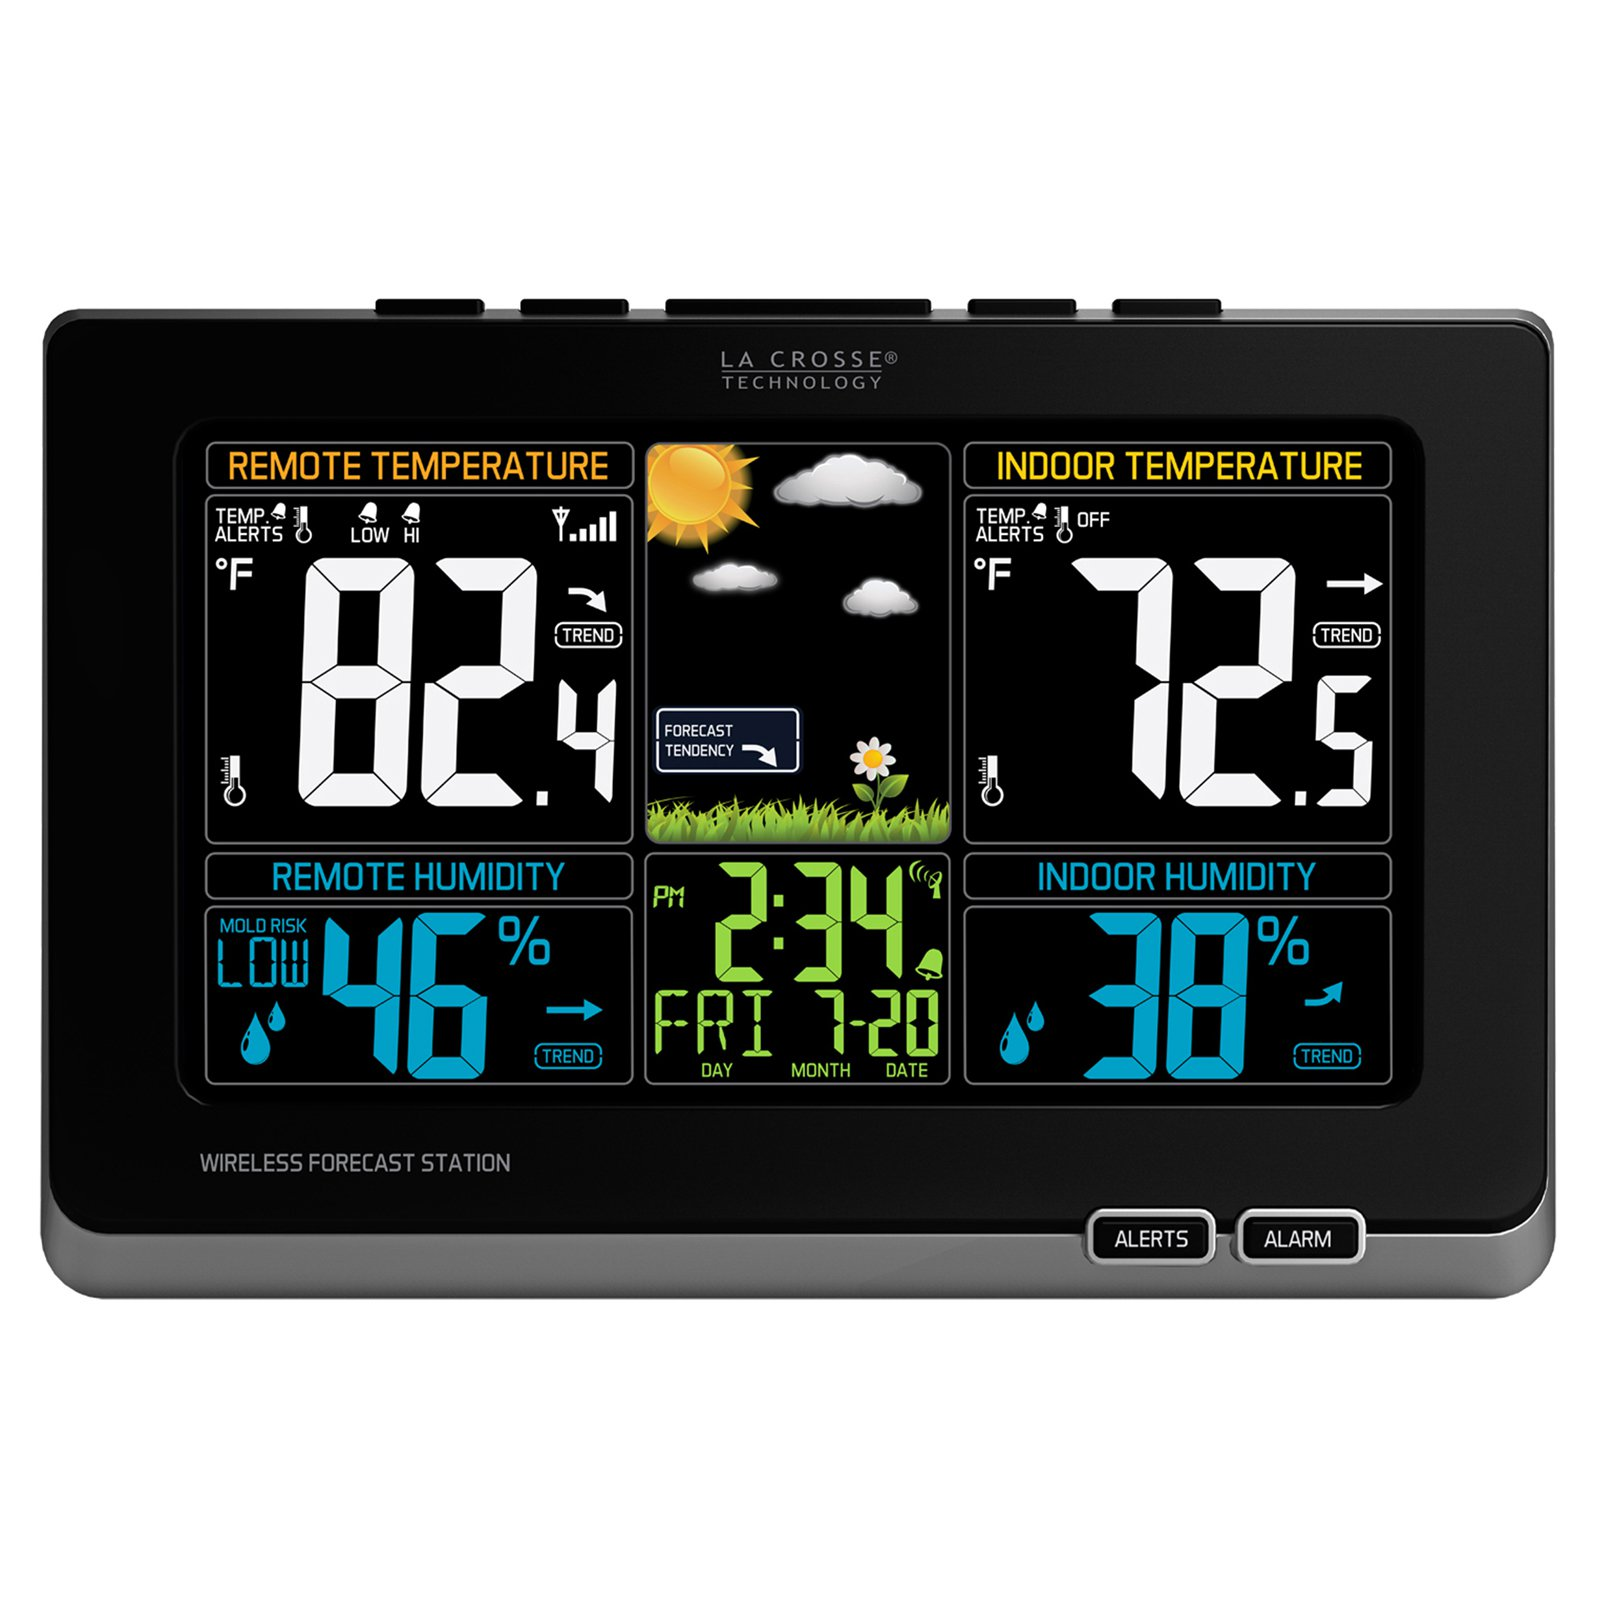 La Crosse 308-1414MB-INT Color Weather Station with In Out Temperature, Humidity and Mold... by La Crosse Technology